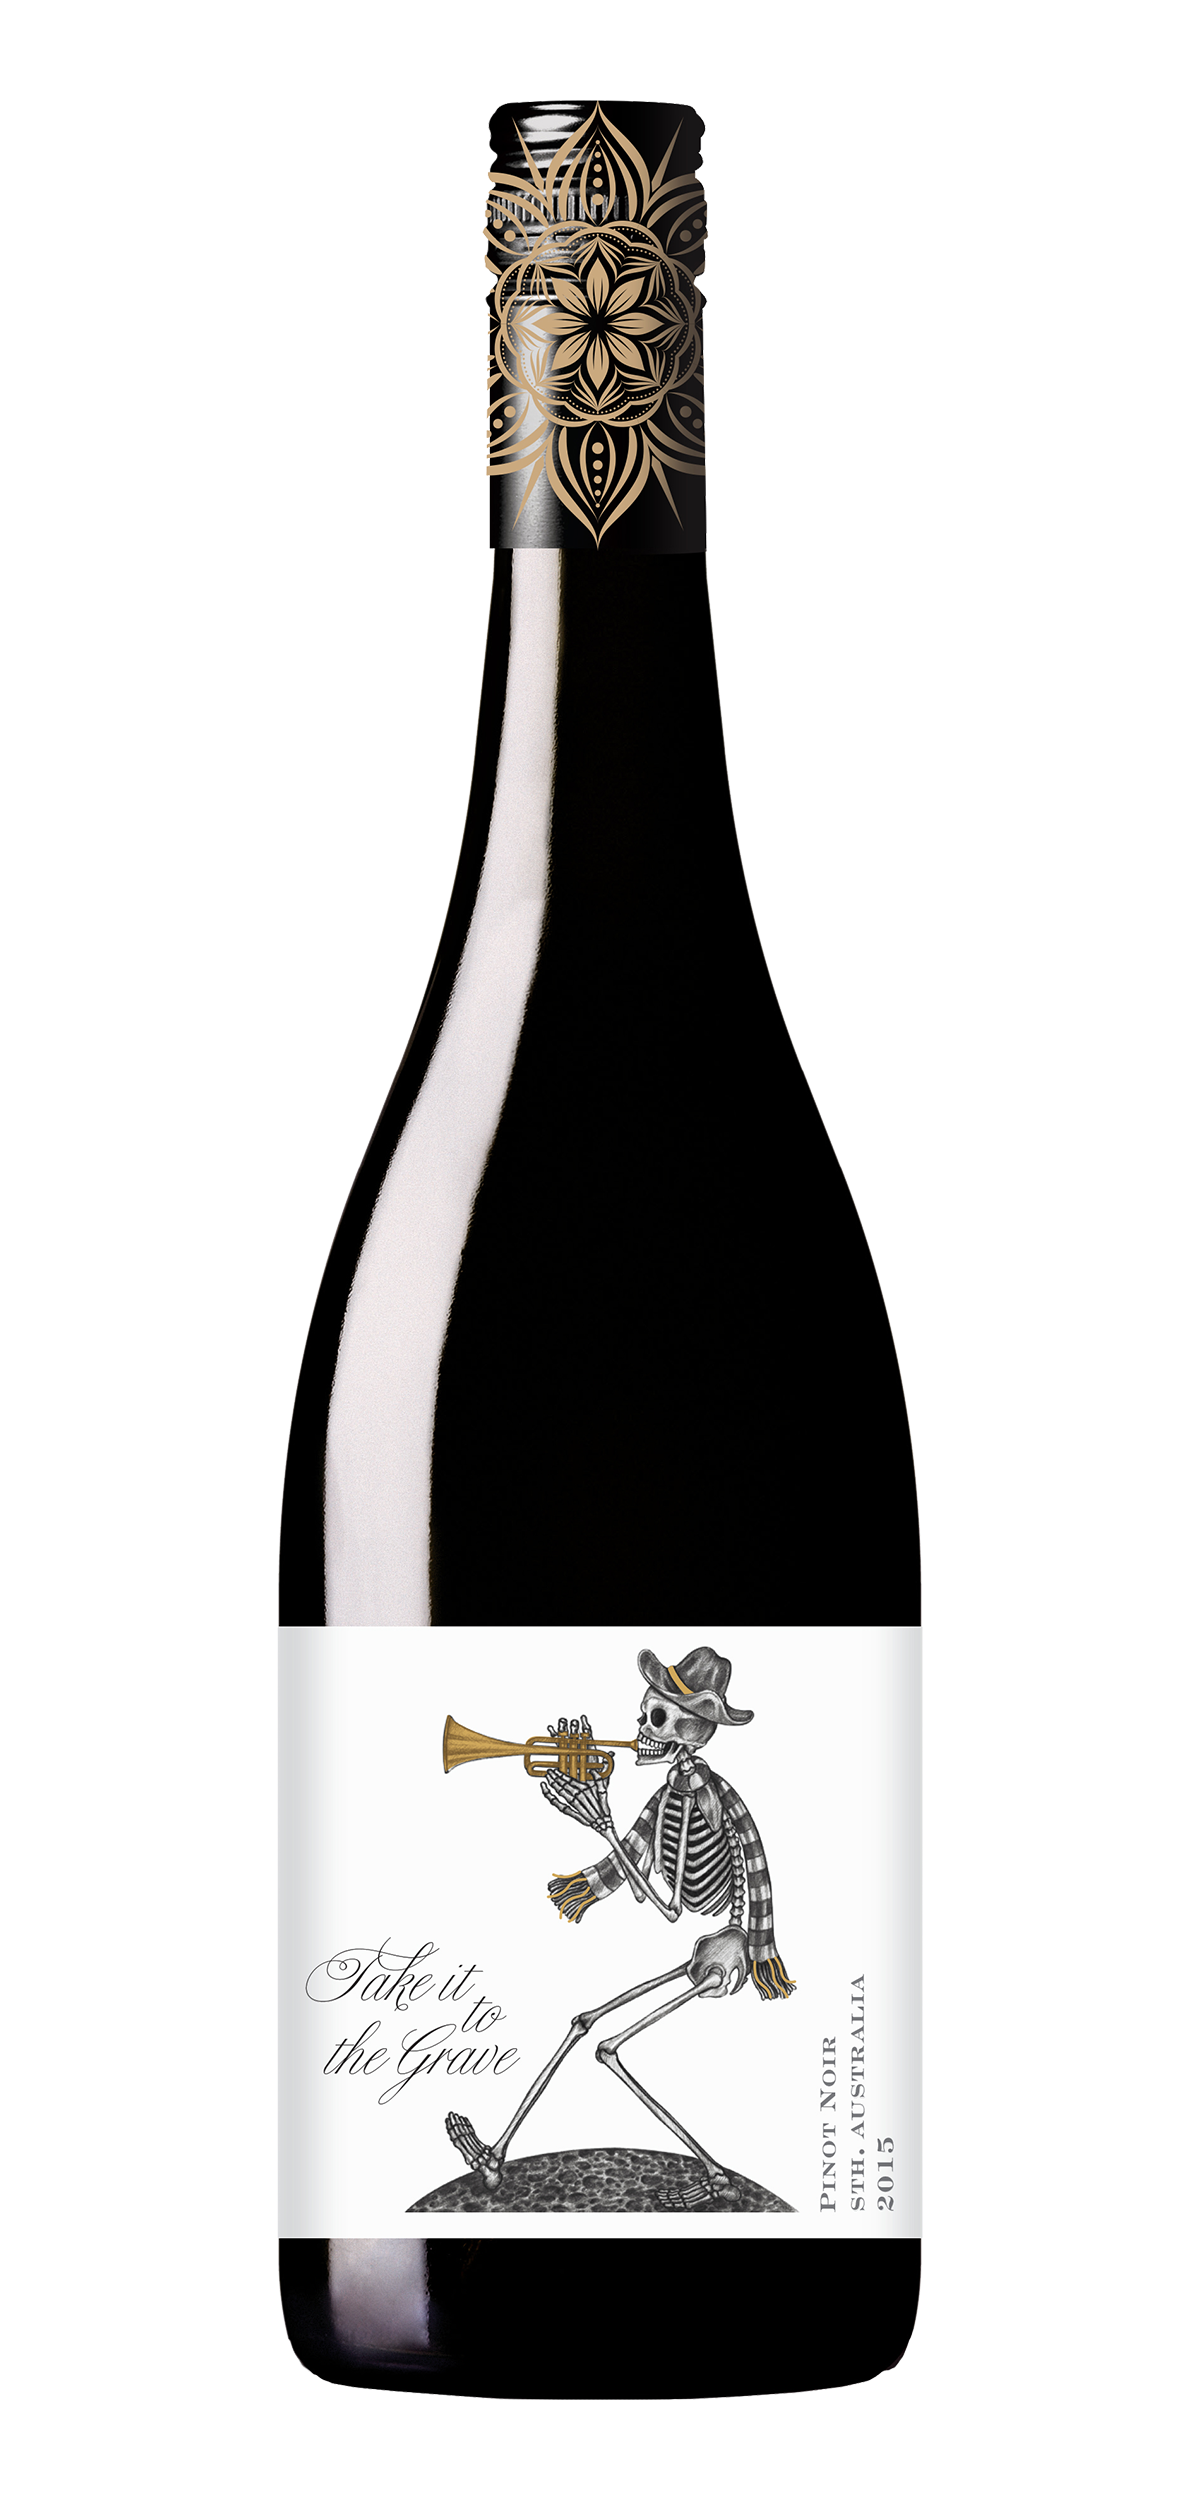 Take It To The Grave wine bottle design